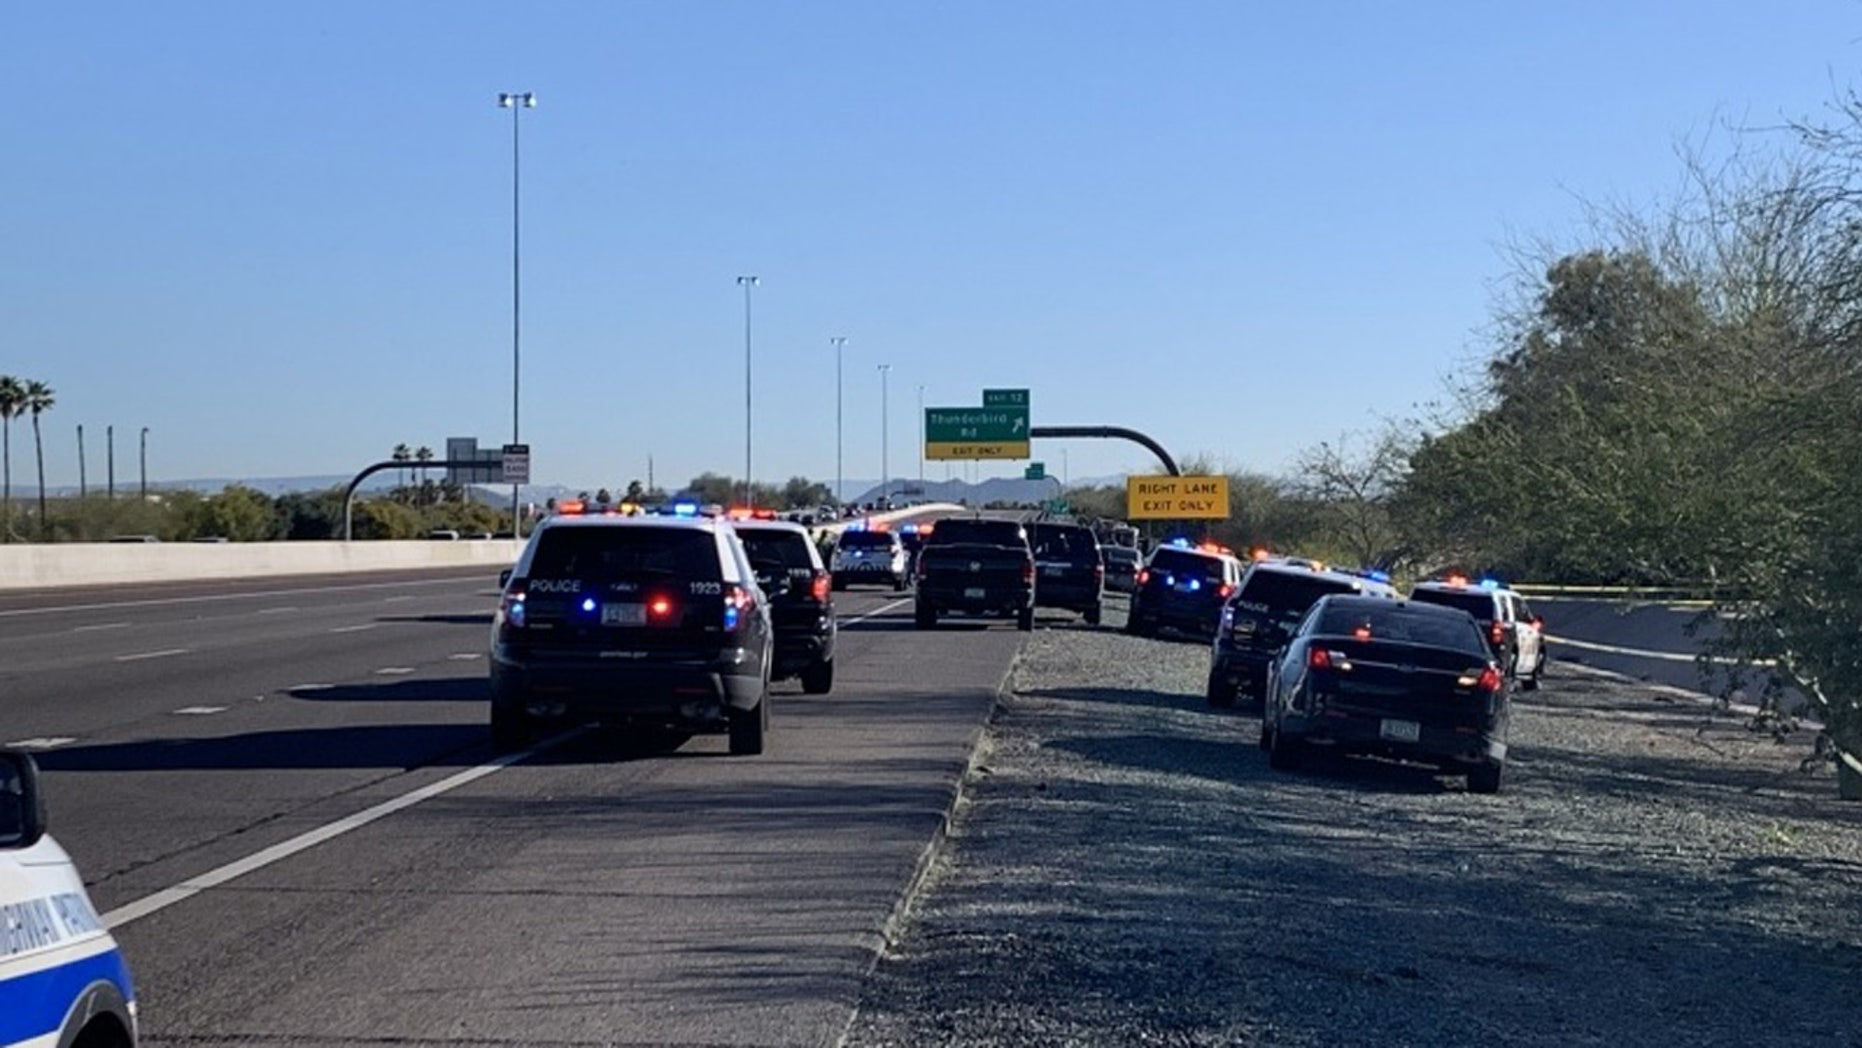 According to the Arizona Public Security Department, at 6:56 am police responded to a call that a white Lexus sedan heading north had crashed after being near Thunderbird Road in the United States Close to the Thunderbird Road was.